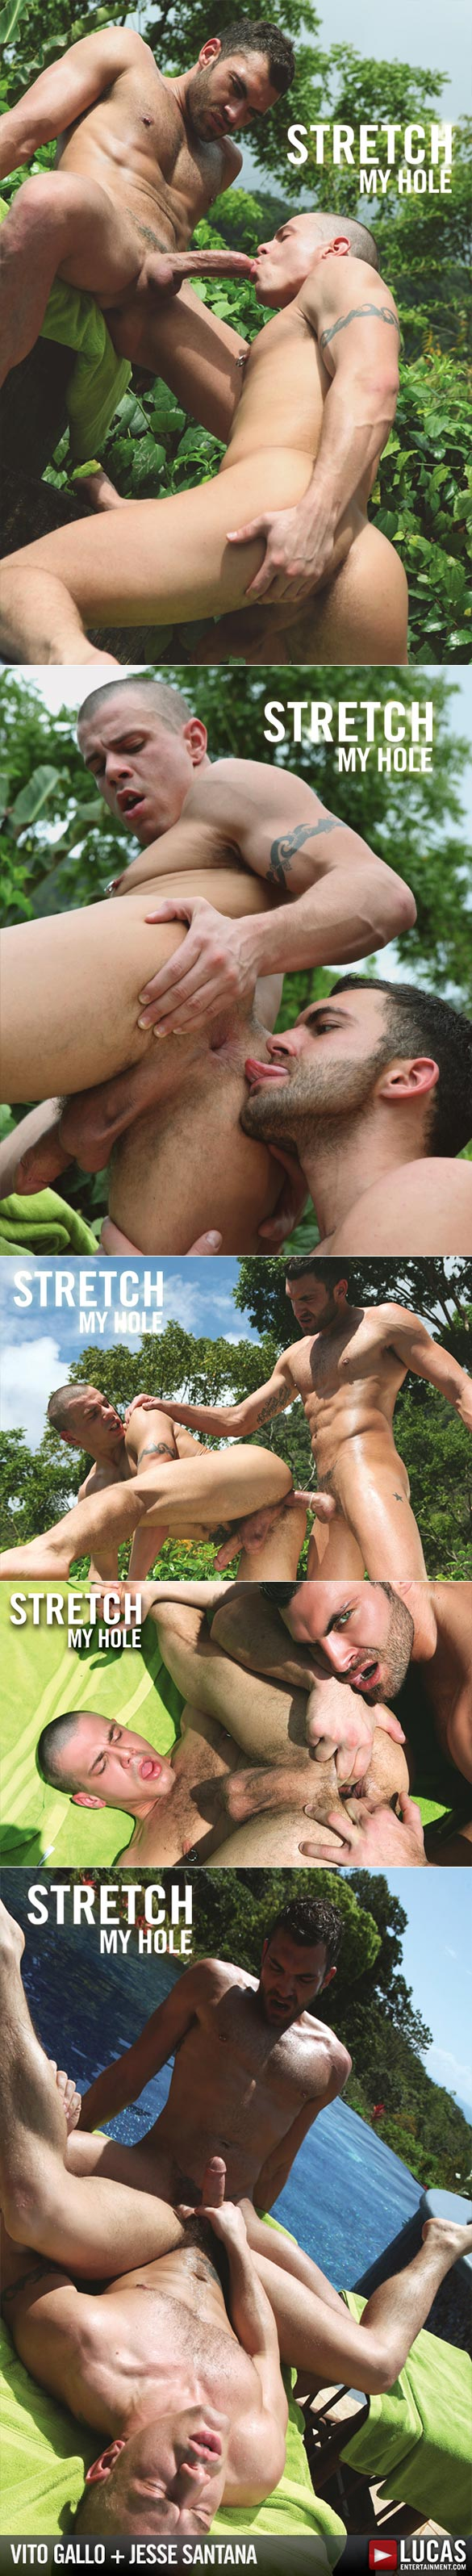 "Lucas Raunch: Vito Gallo stretches Jesse Santana's ass open in ""Stretch My Hole"""